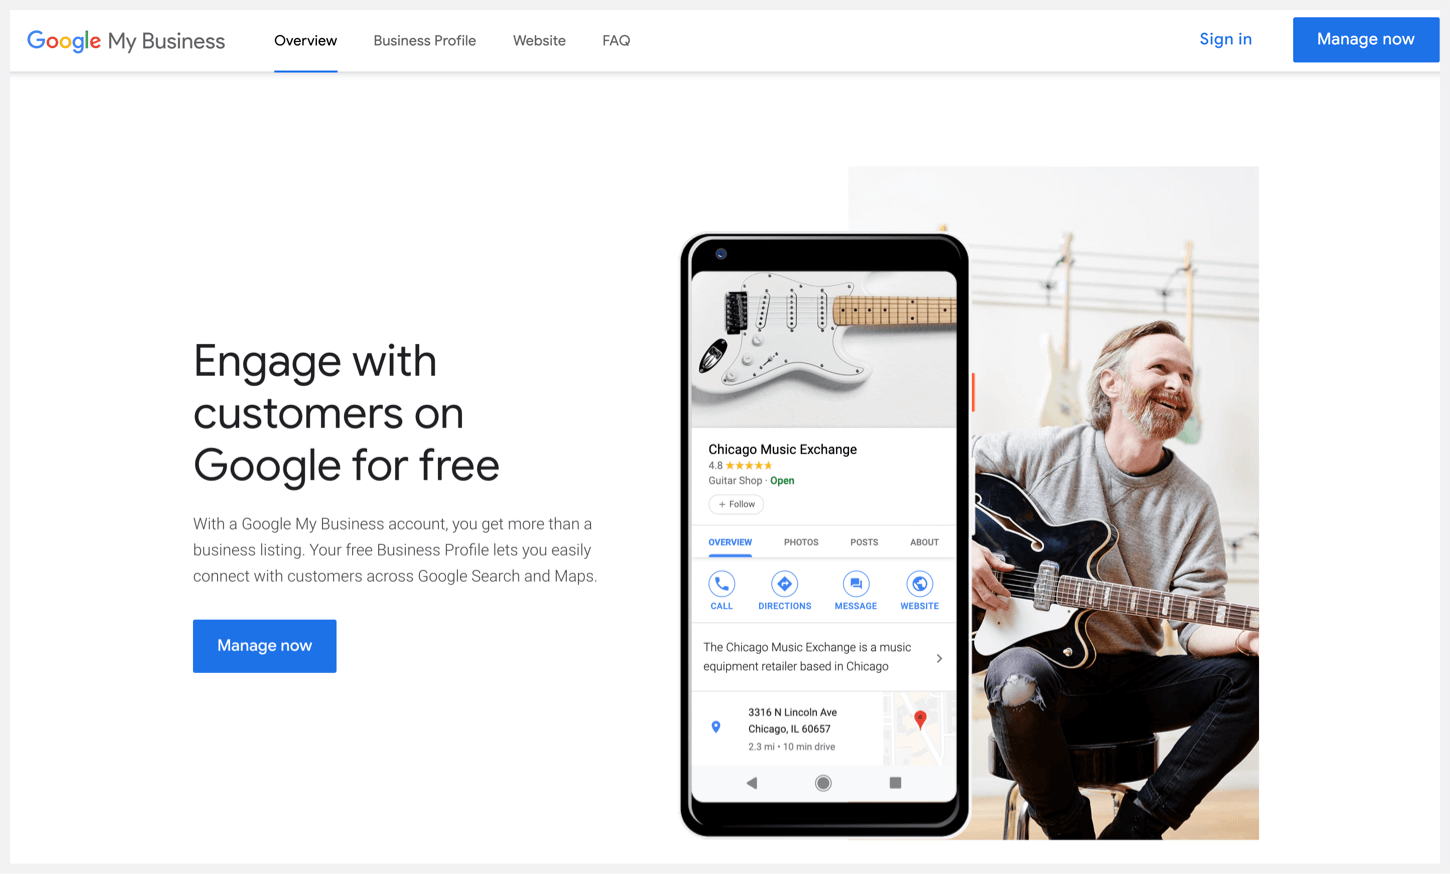 Google My Business' sign-up page.